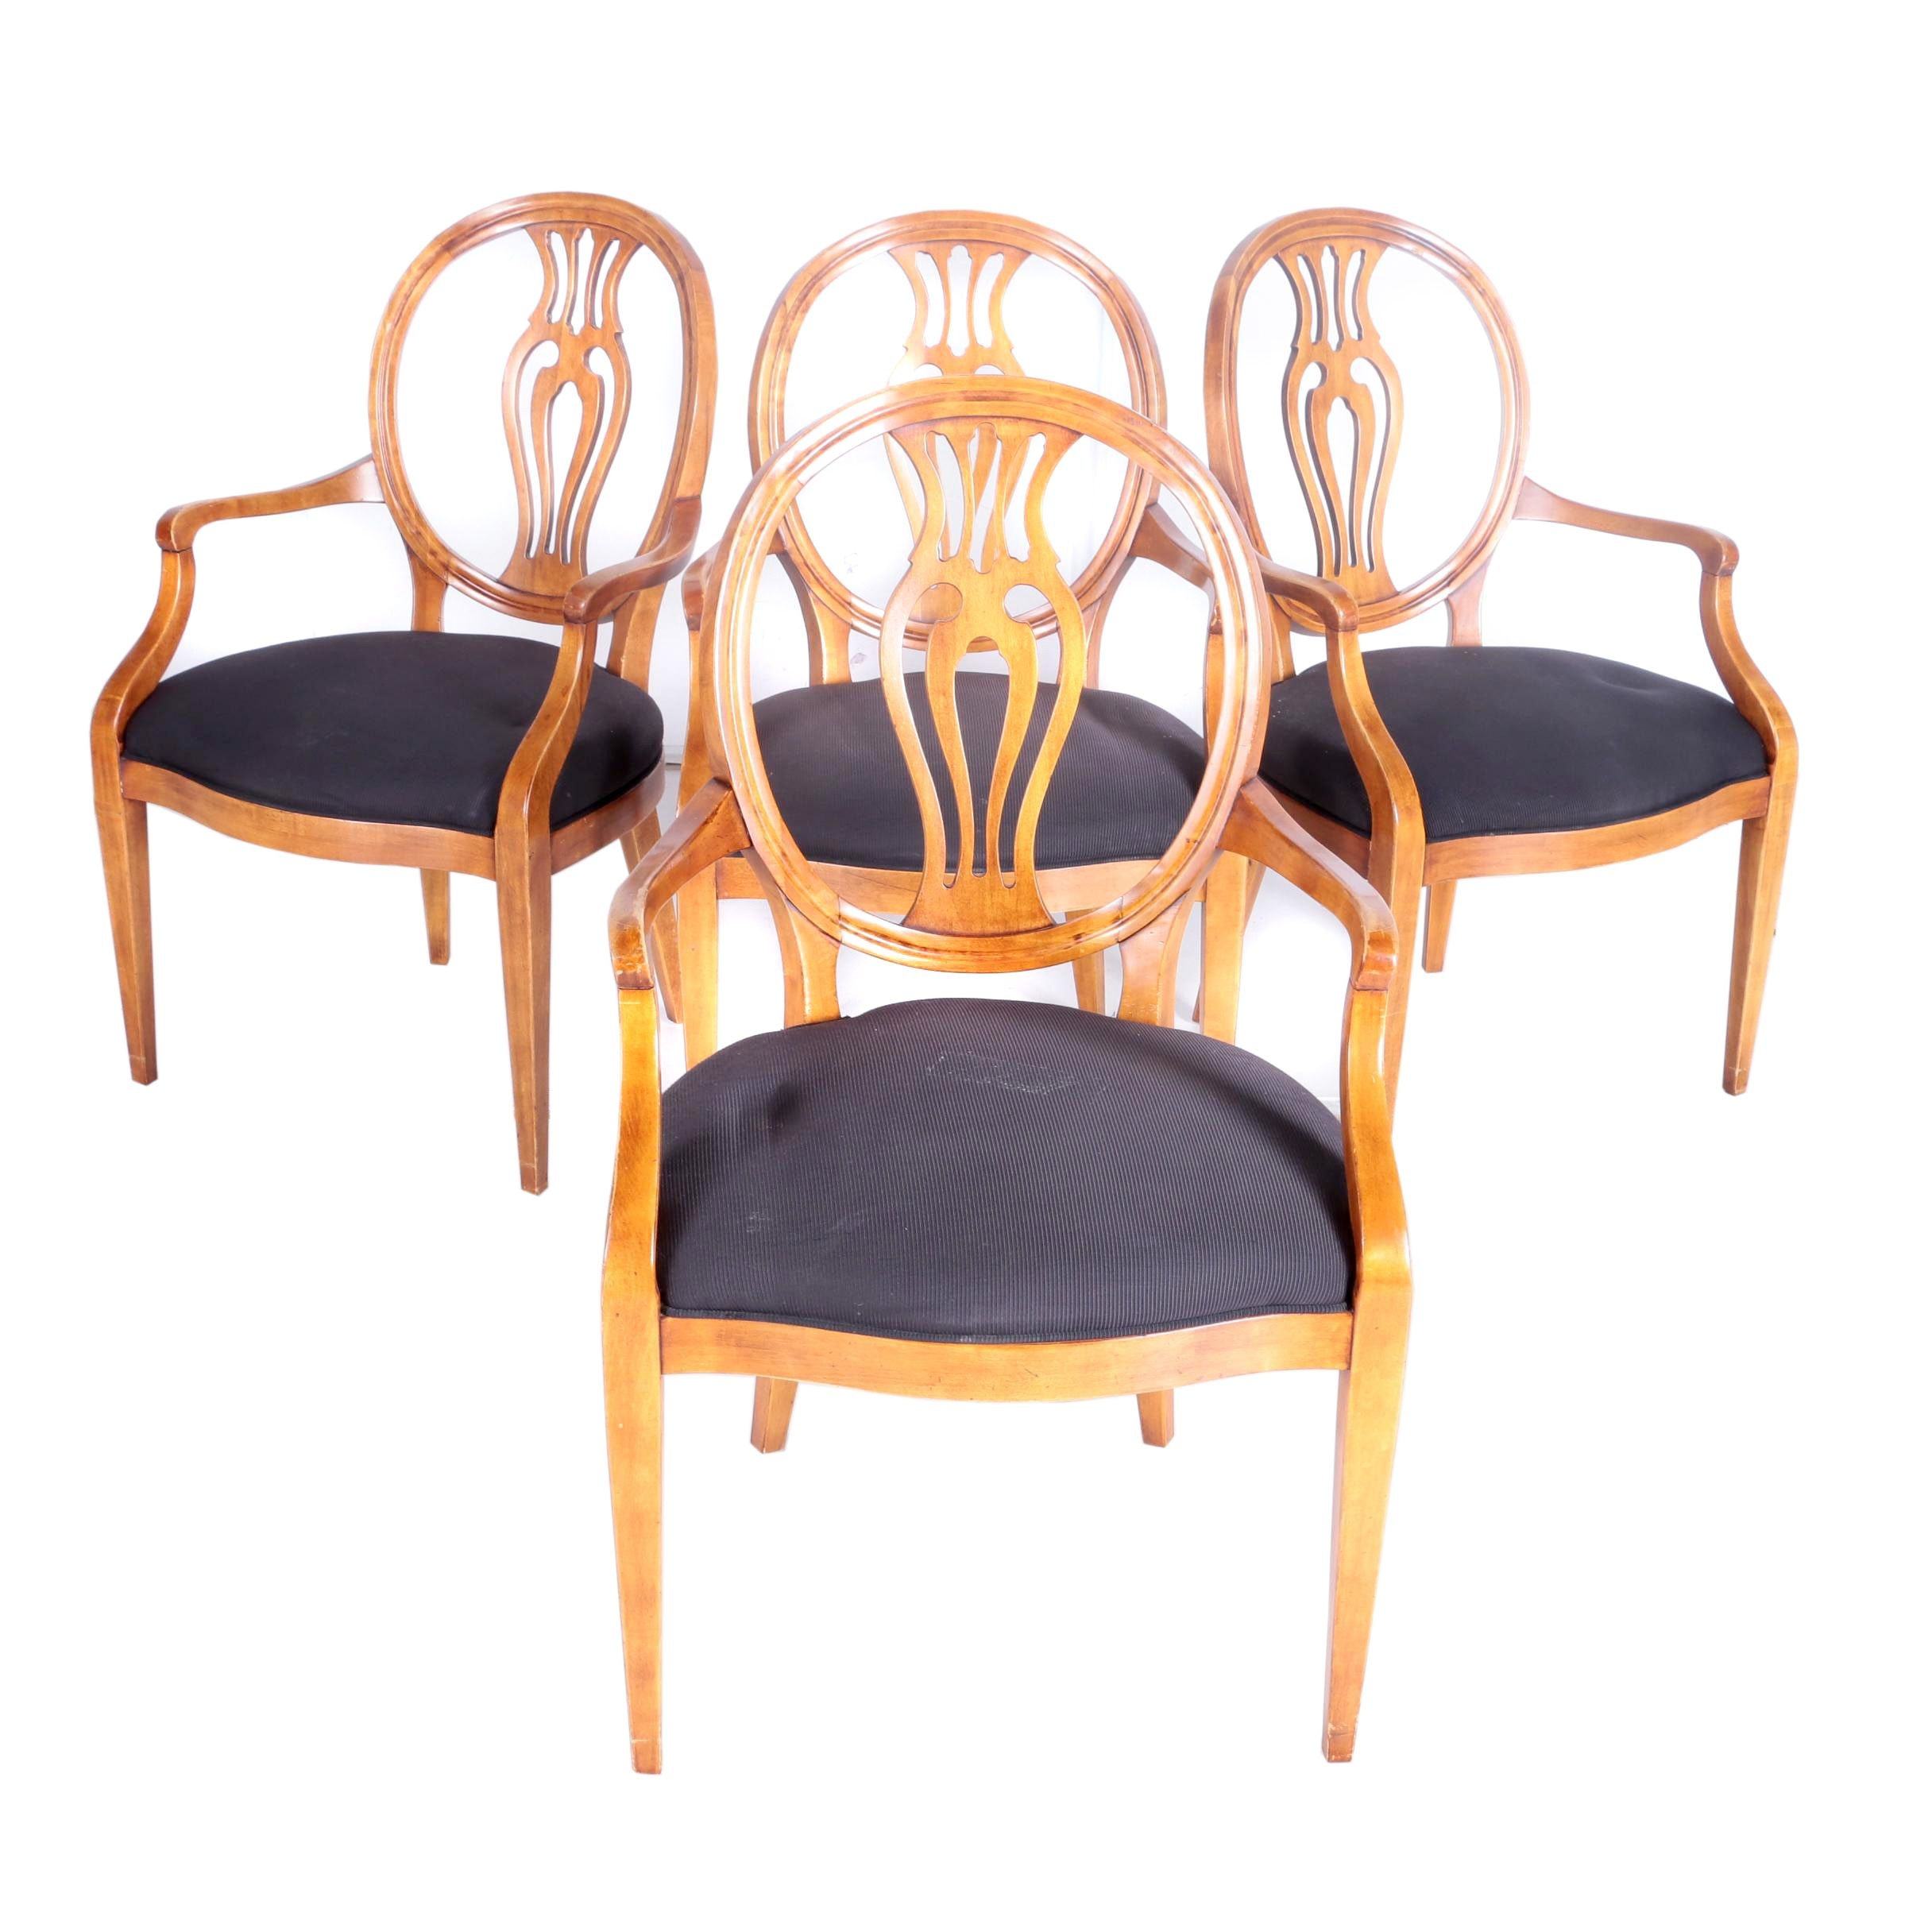 birch dining chairs four hepplewhite style birch dining chairs ebth 1660